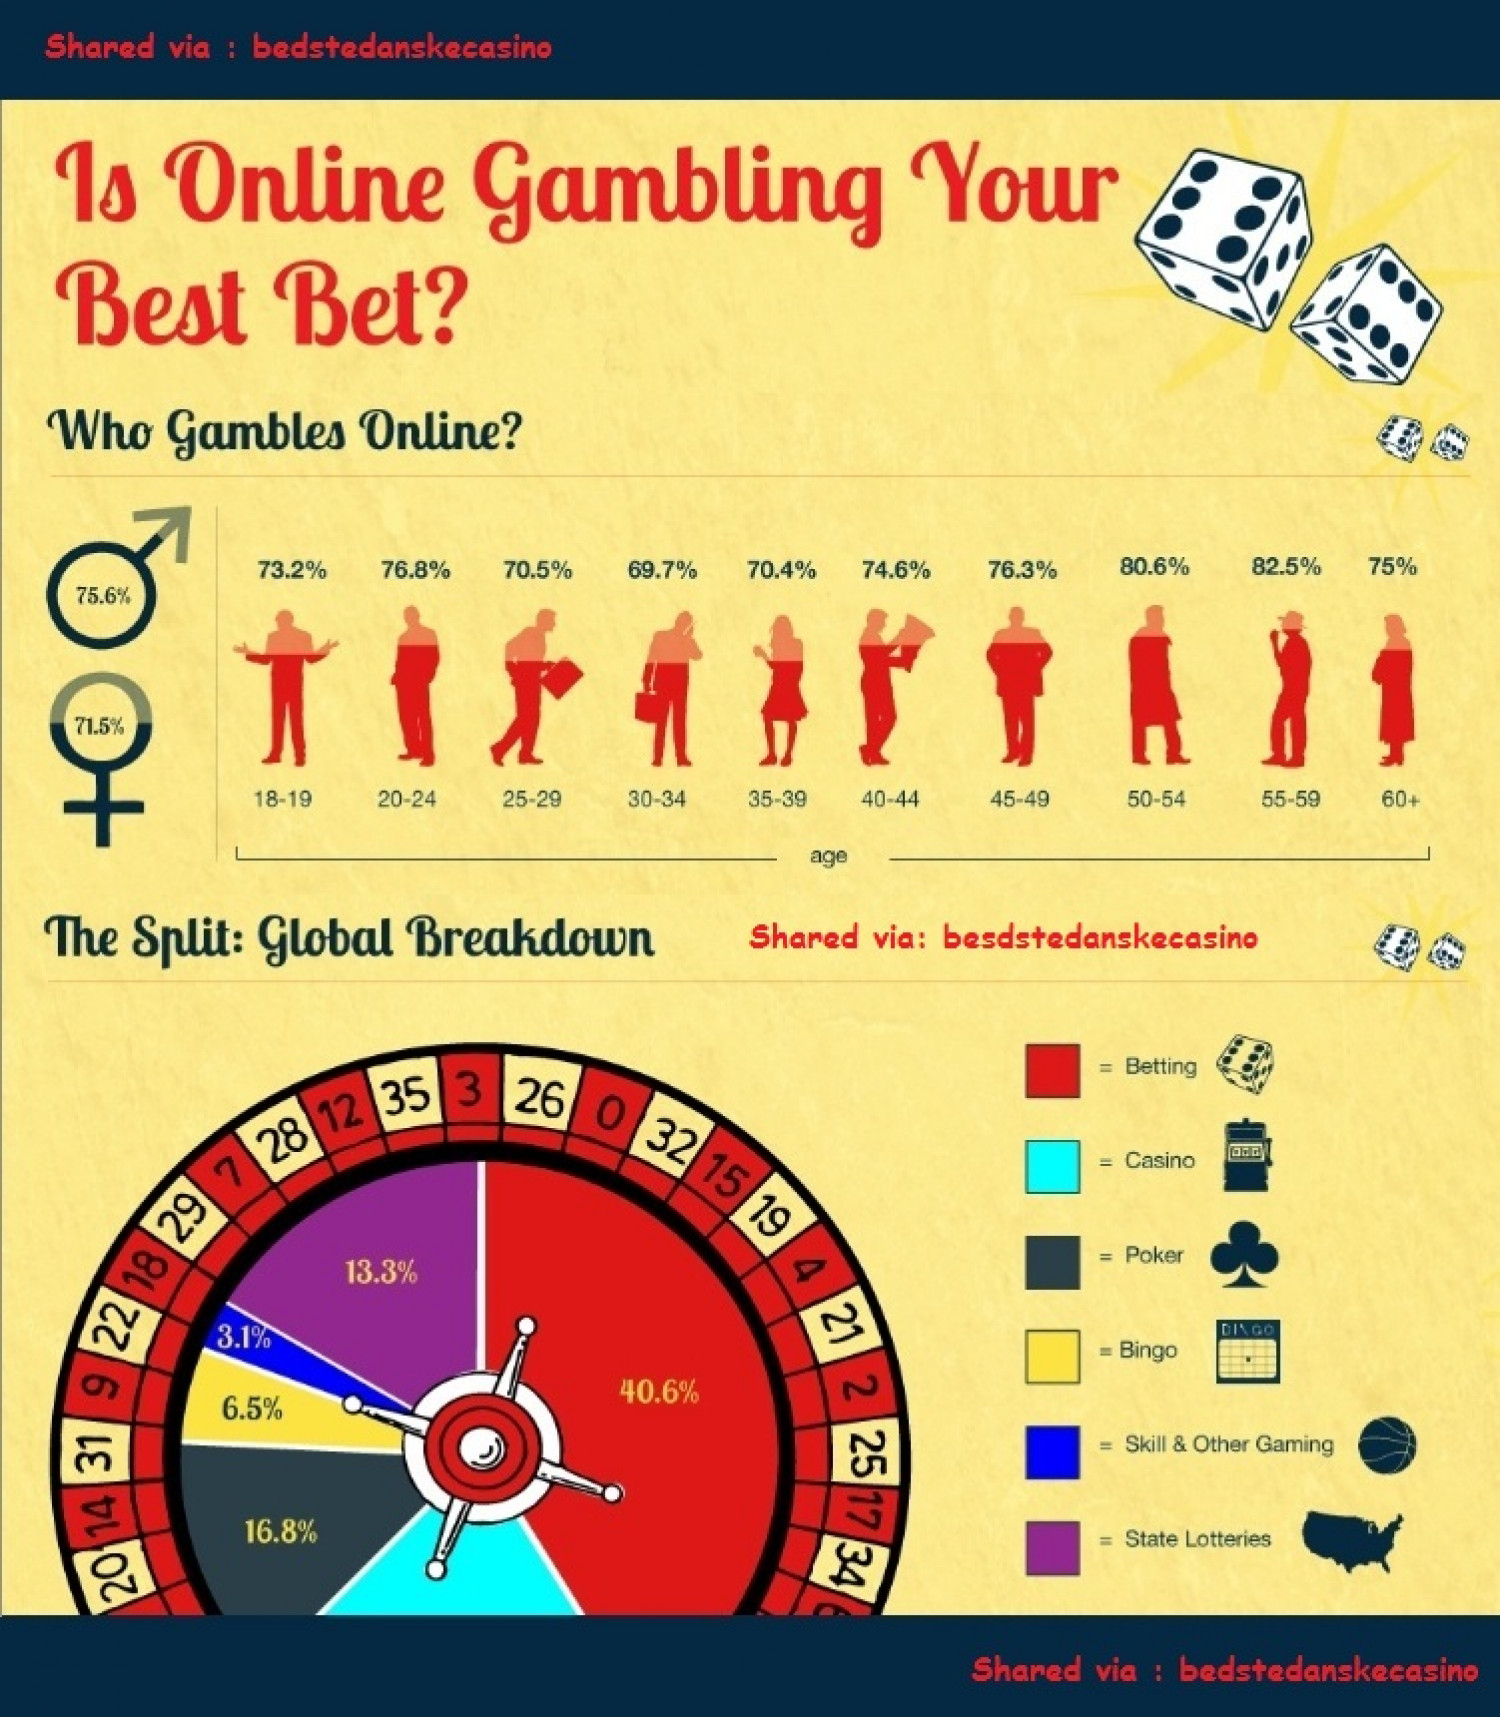 is online gambling your best bet ? Infographic